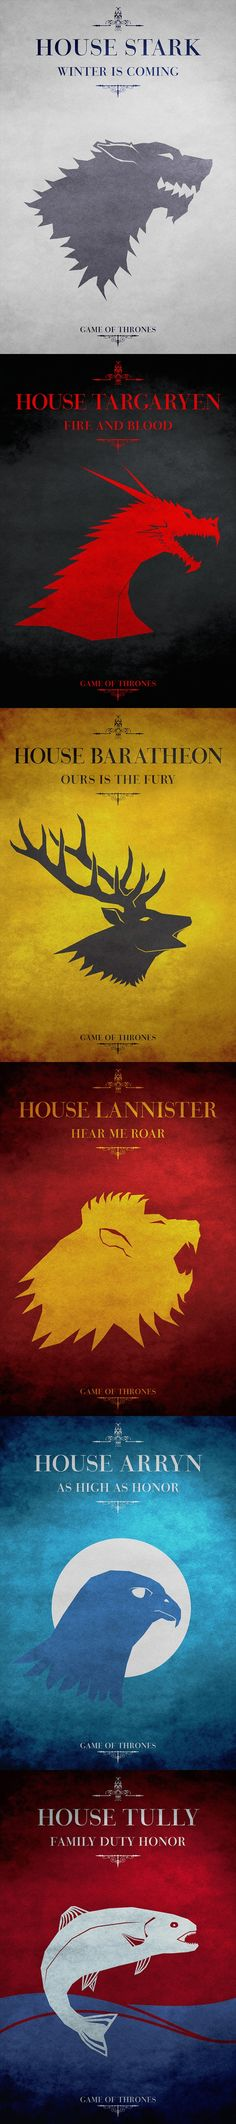 Game of Thrones by Guillaume Bachelier